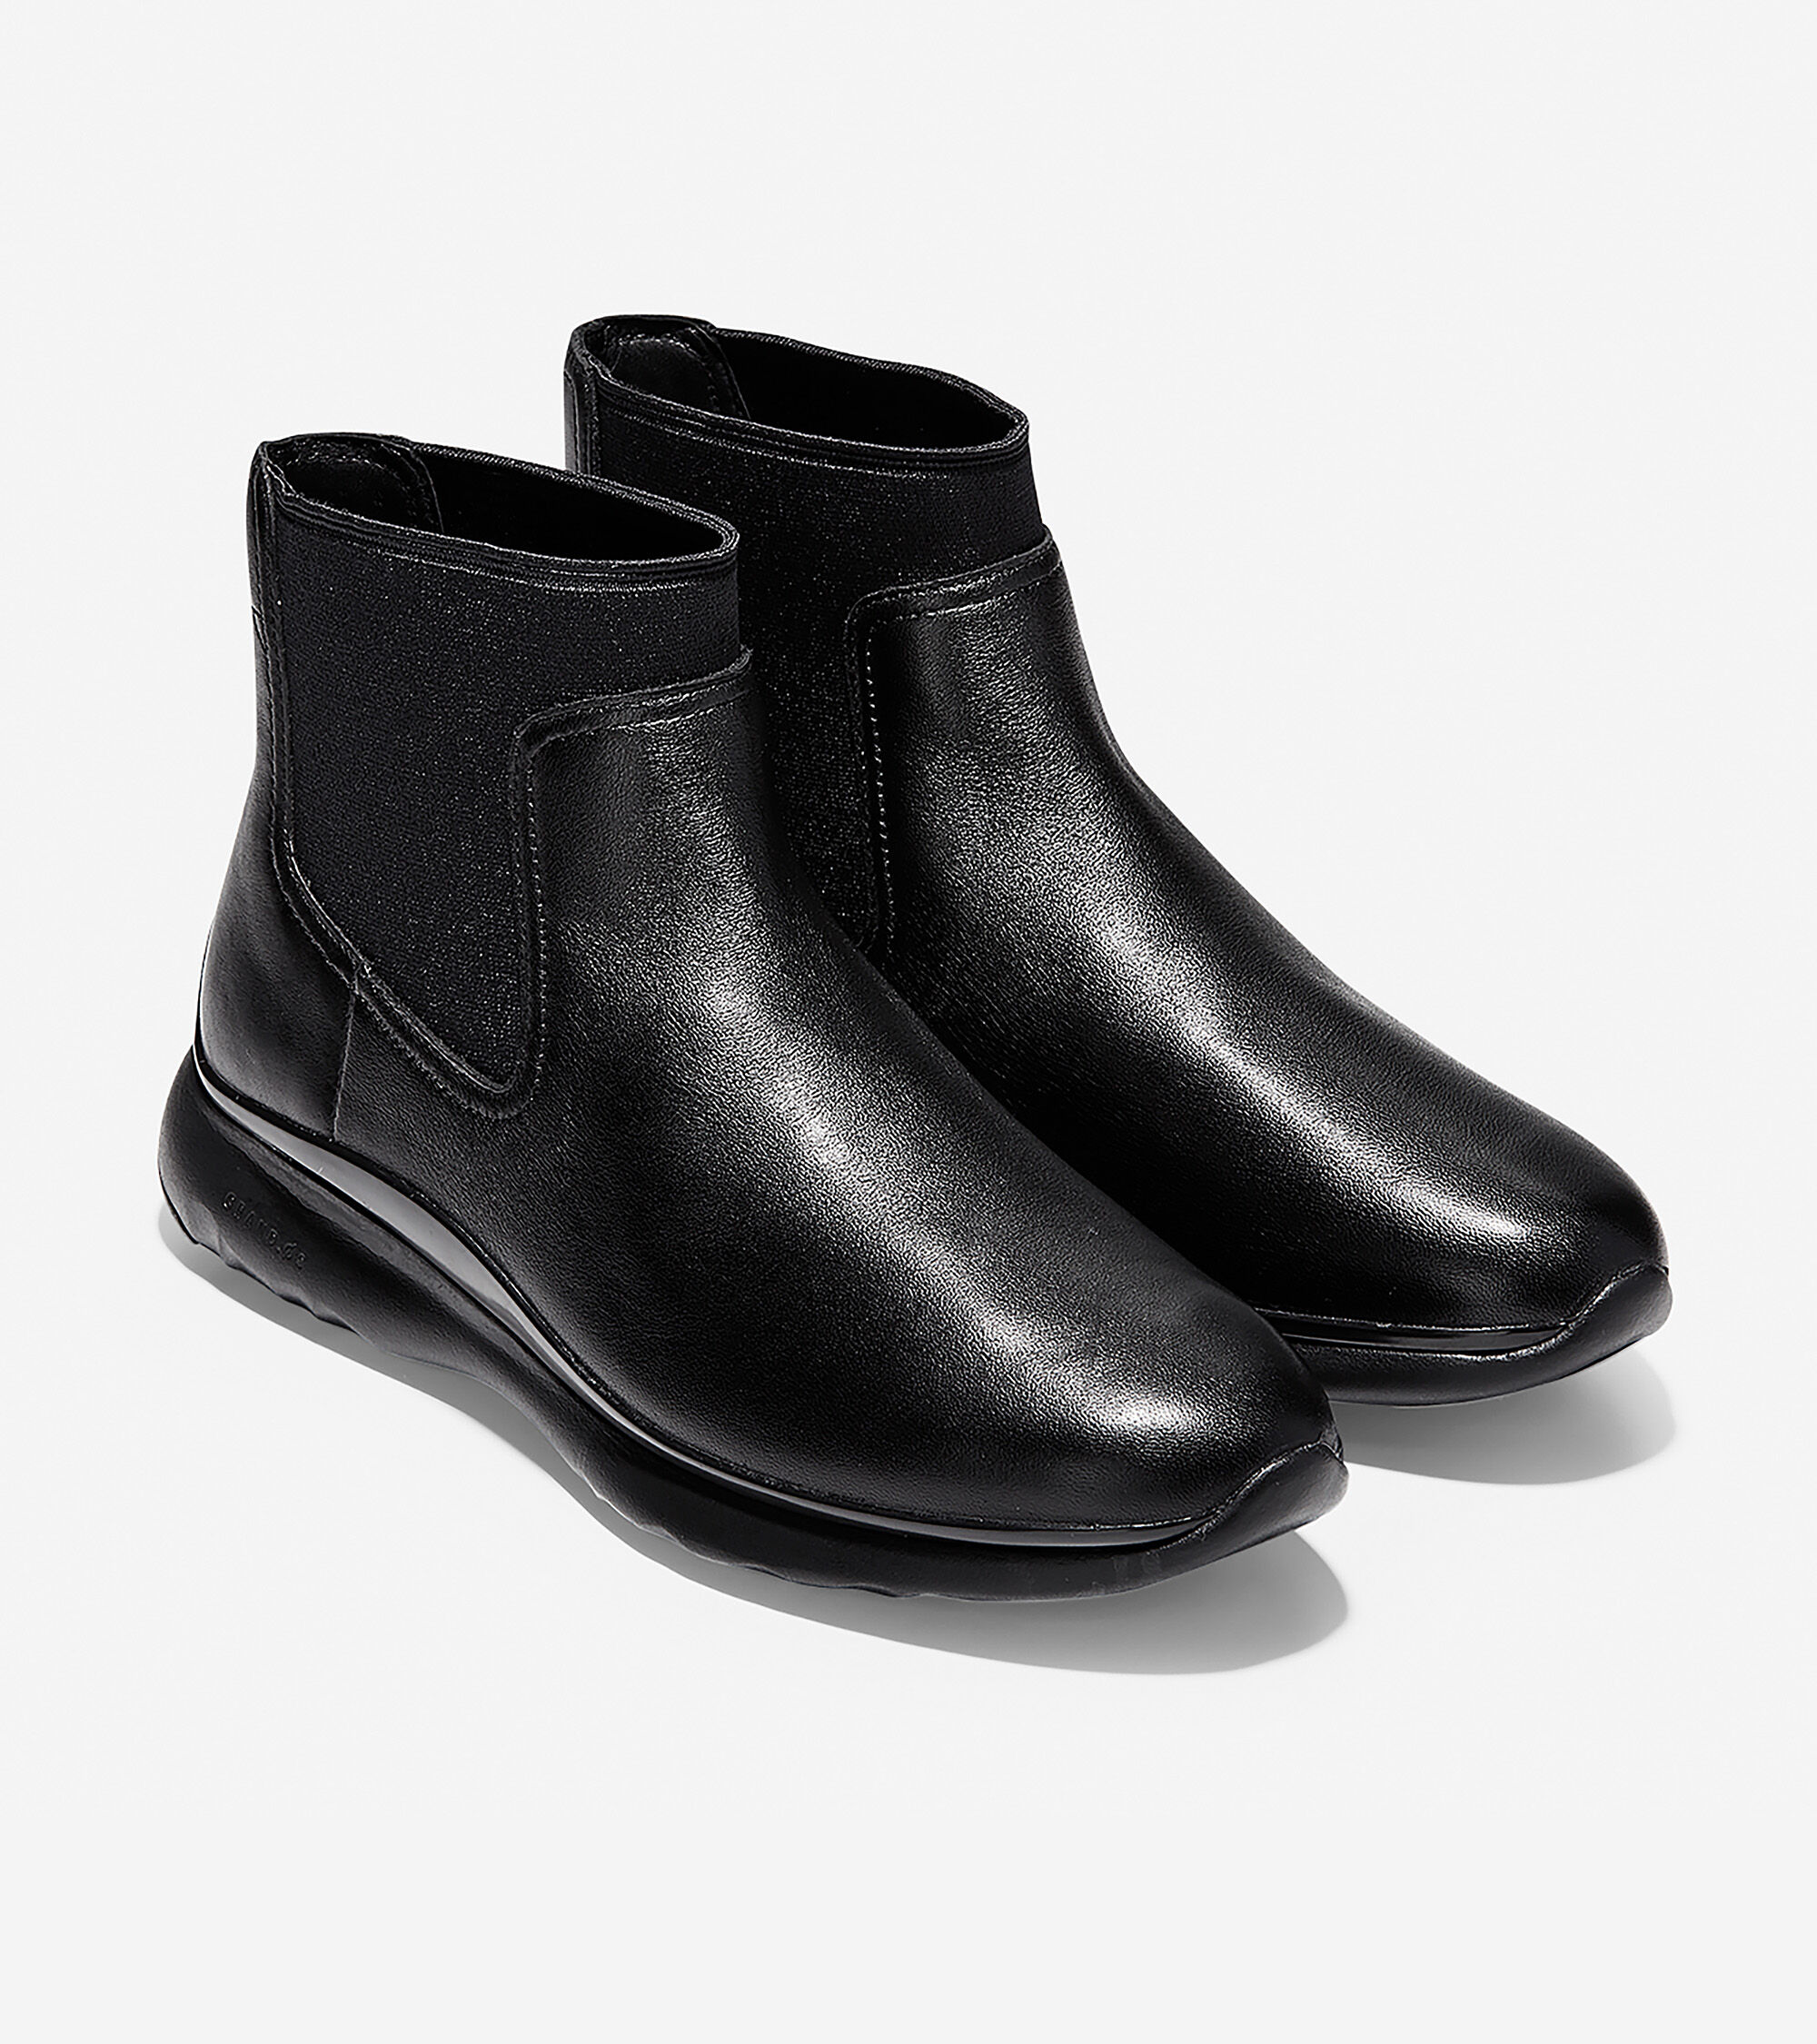 02916c79a4e58 ZERØGRAND Waterproof Chelsea Boot · Women s 3.ZERØGRAND Waterproof Chelsea  Boot ...